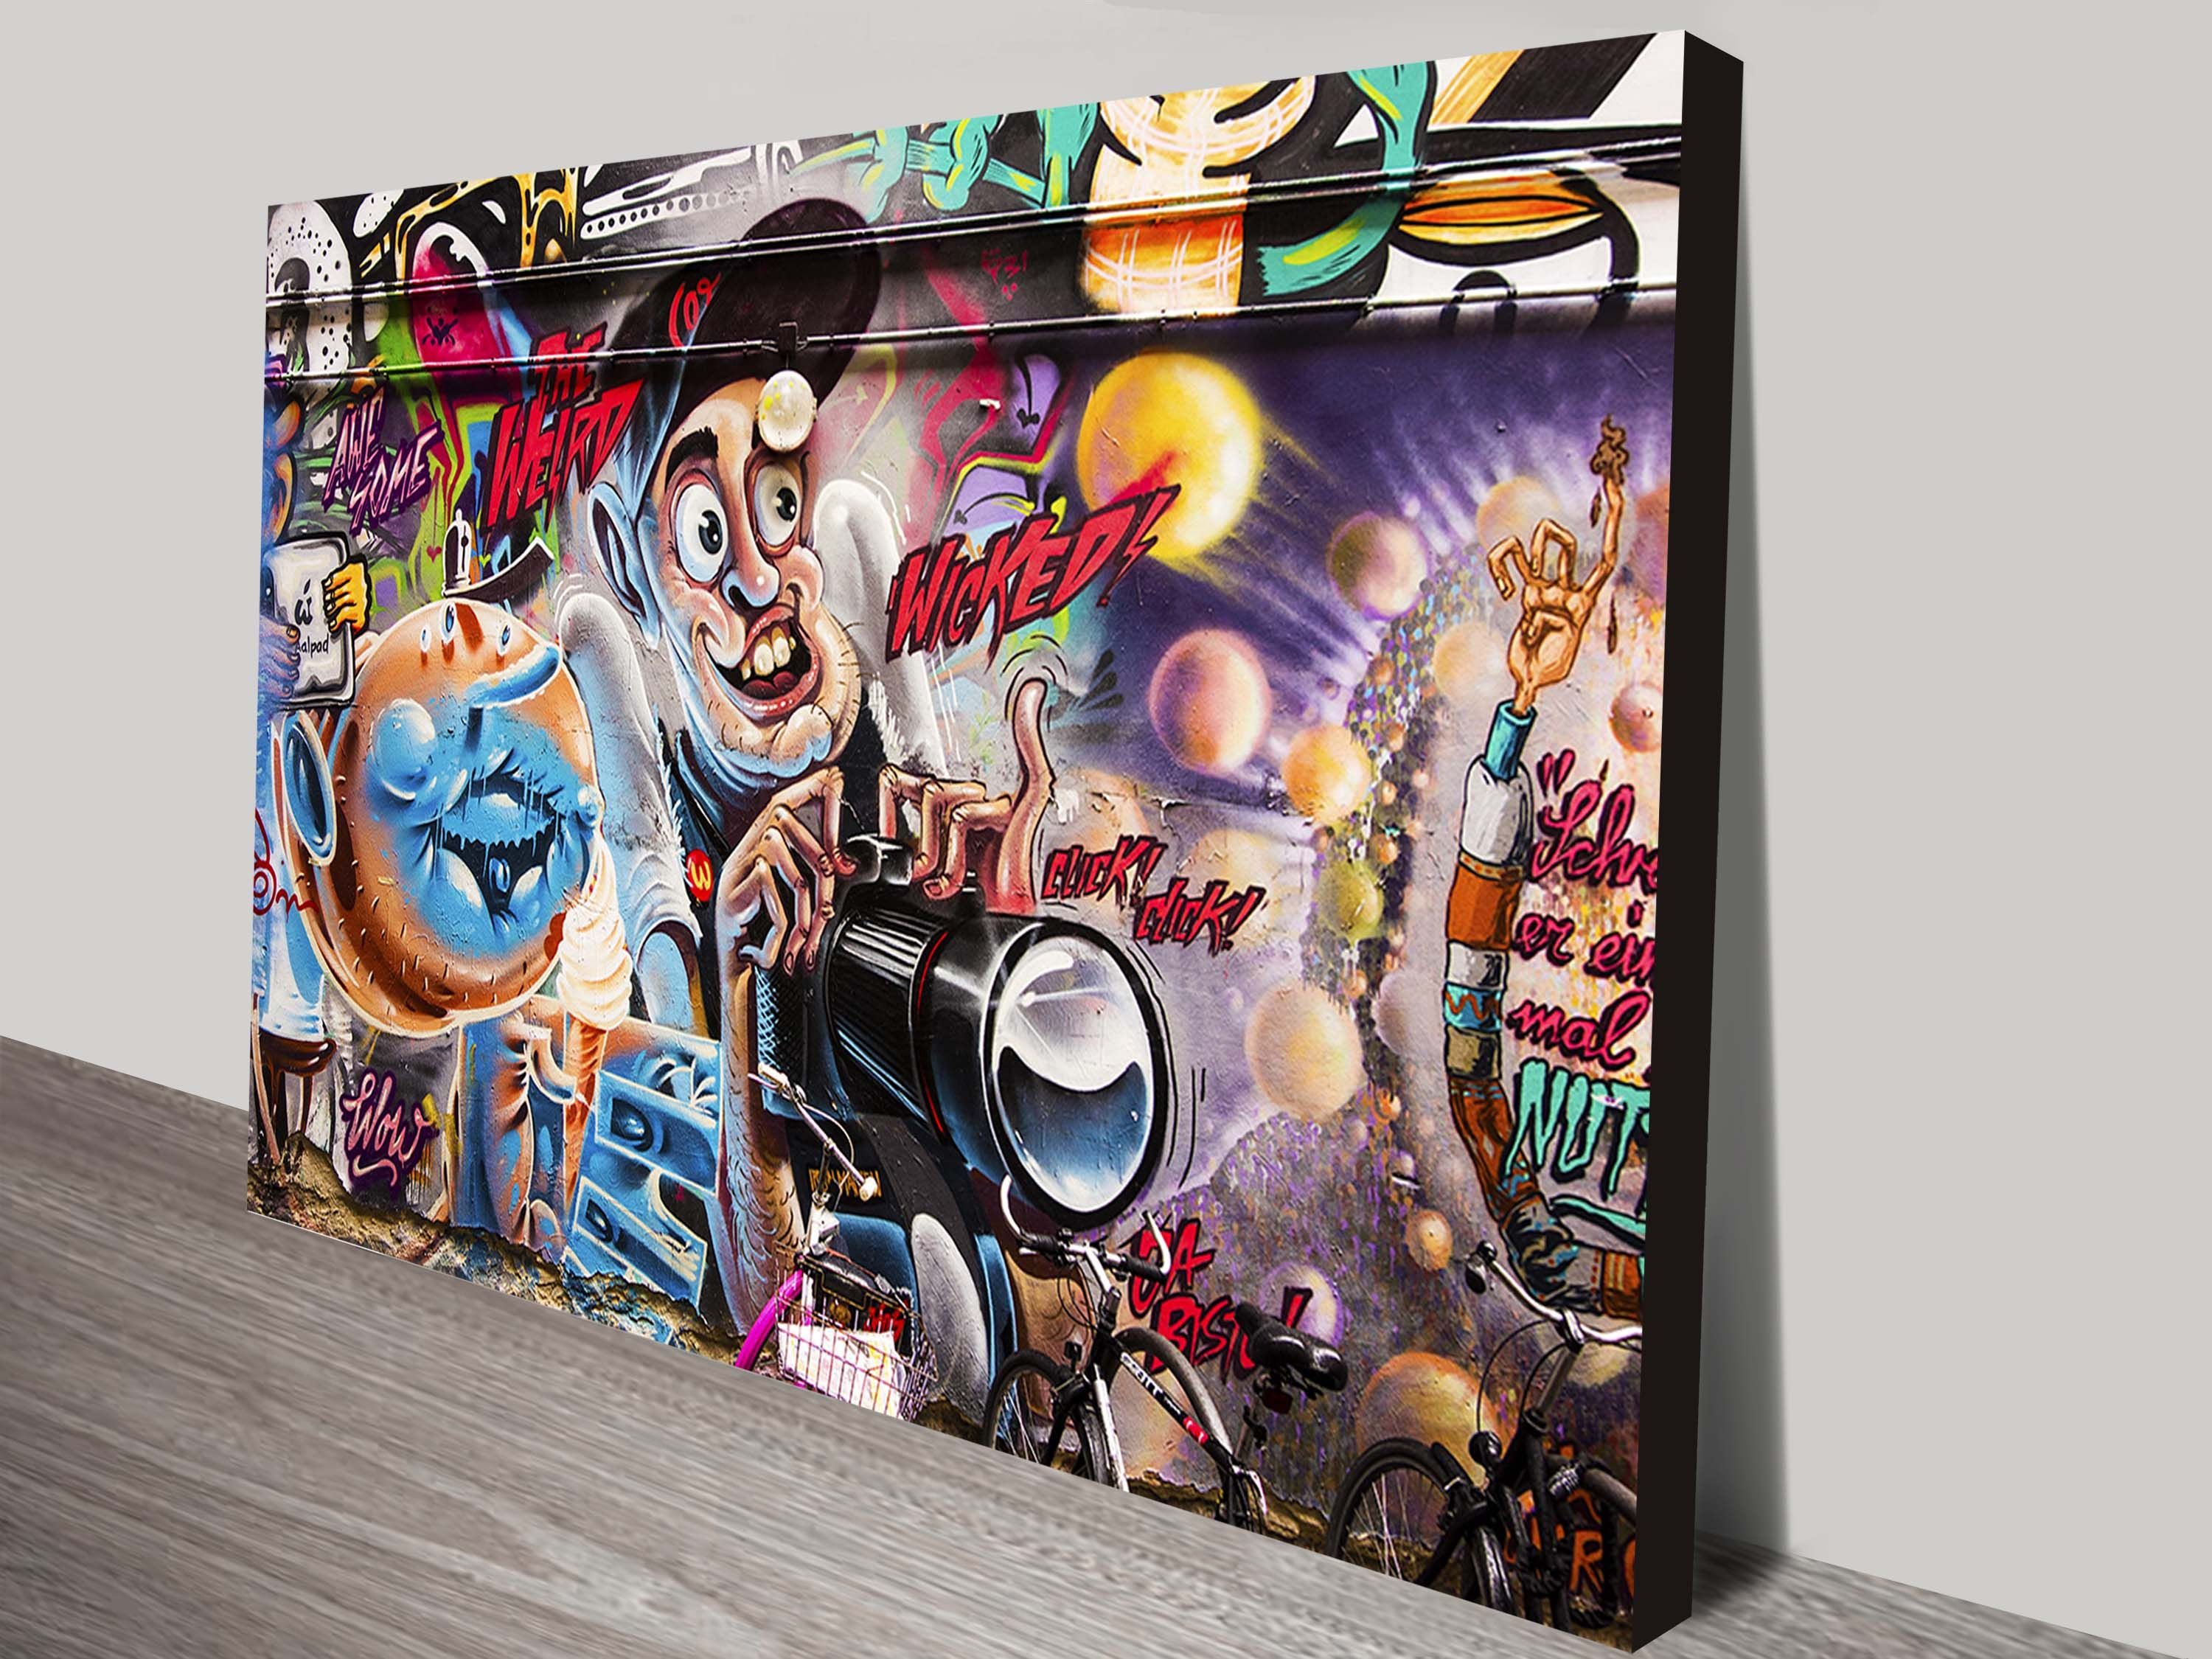 This is another of our graffiti canvas print wall art designs this fun street art